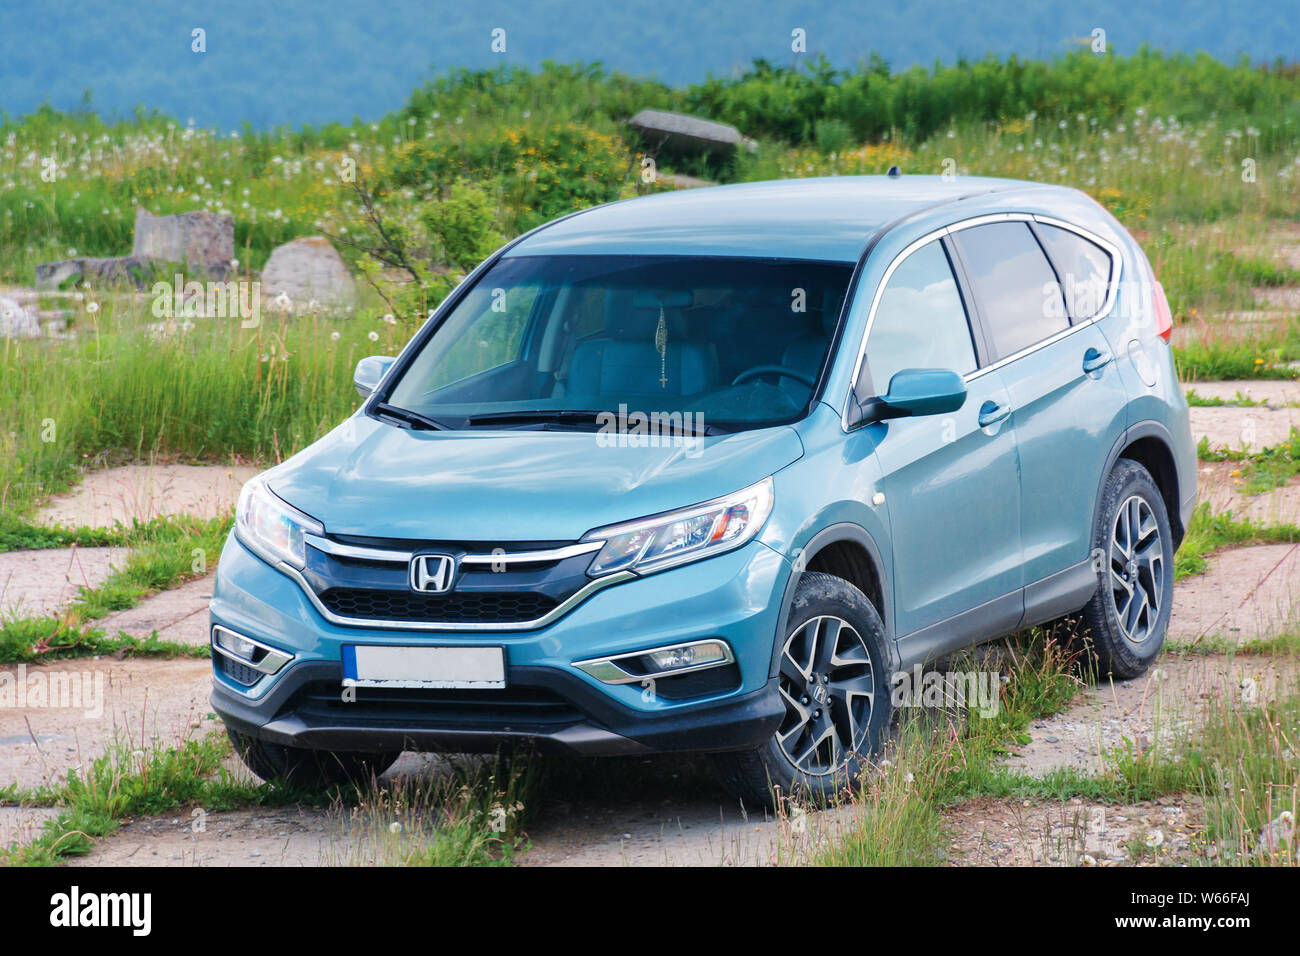 Mnt Runa Ukraine Jun 22 2019 Honda Crv On A Paved Platform In Mountains 4 Generation Of A Popular Family Suv Restyling Model 2015 In Cyan Blue Stock Photo Alamy